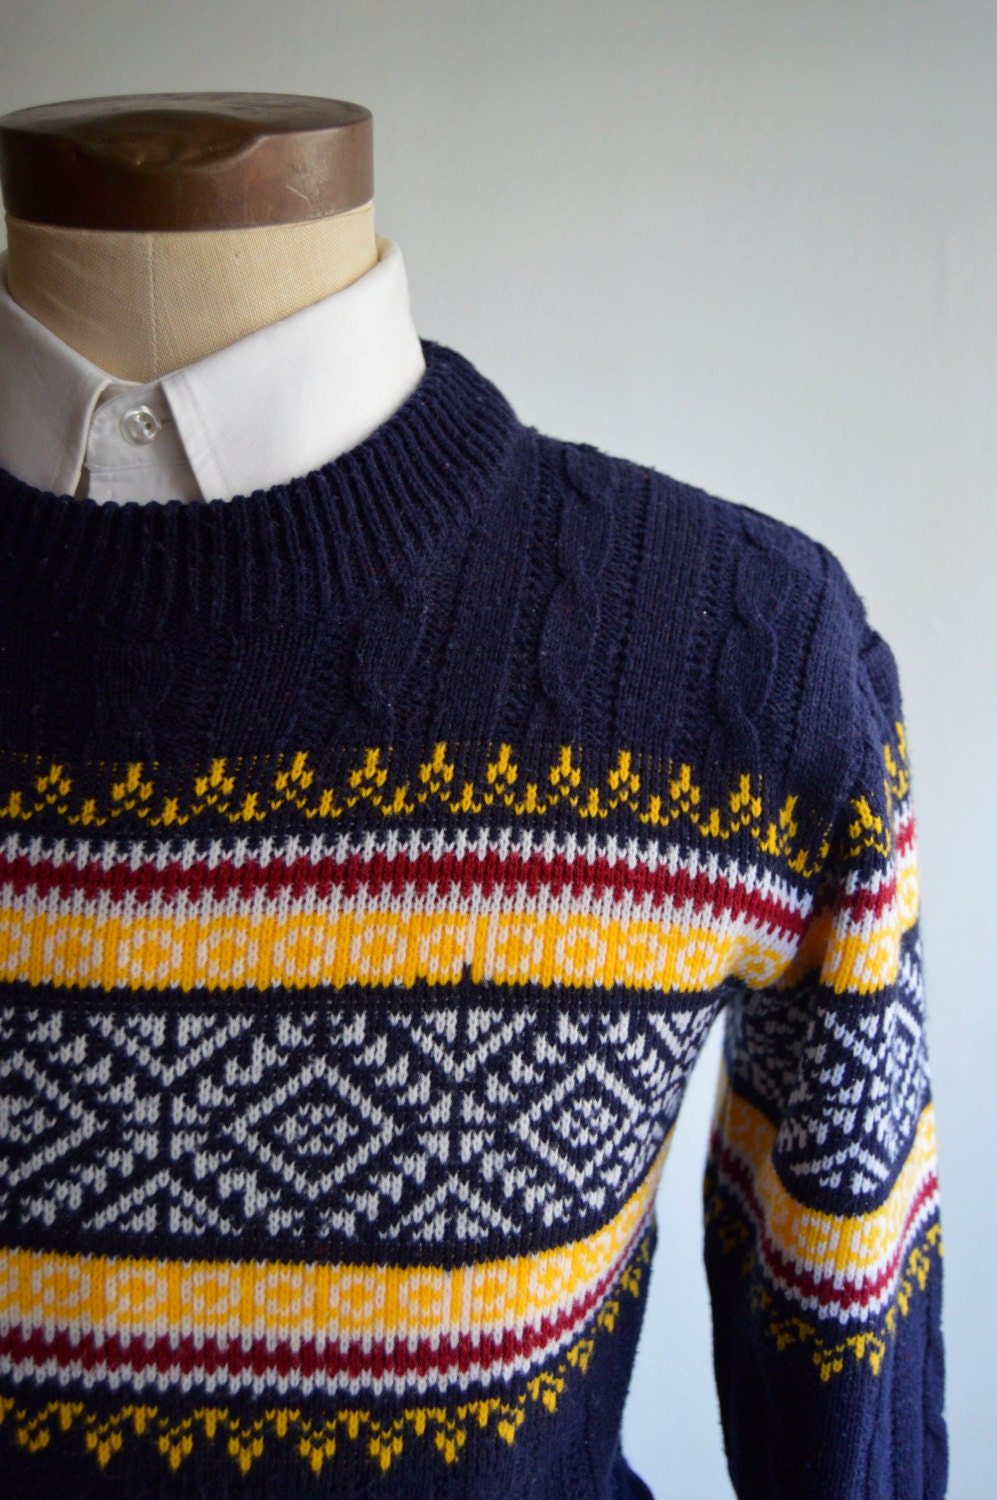 Vintagw 70s Navy Blue Fair Isle/Ski Sweater by JC Penney Size Small